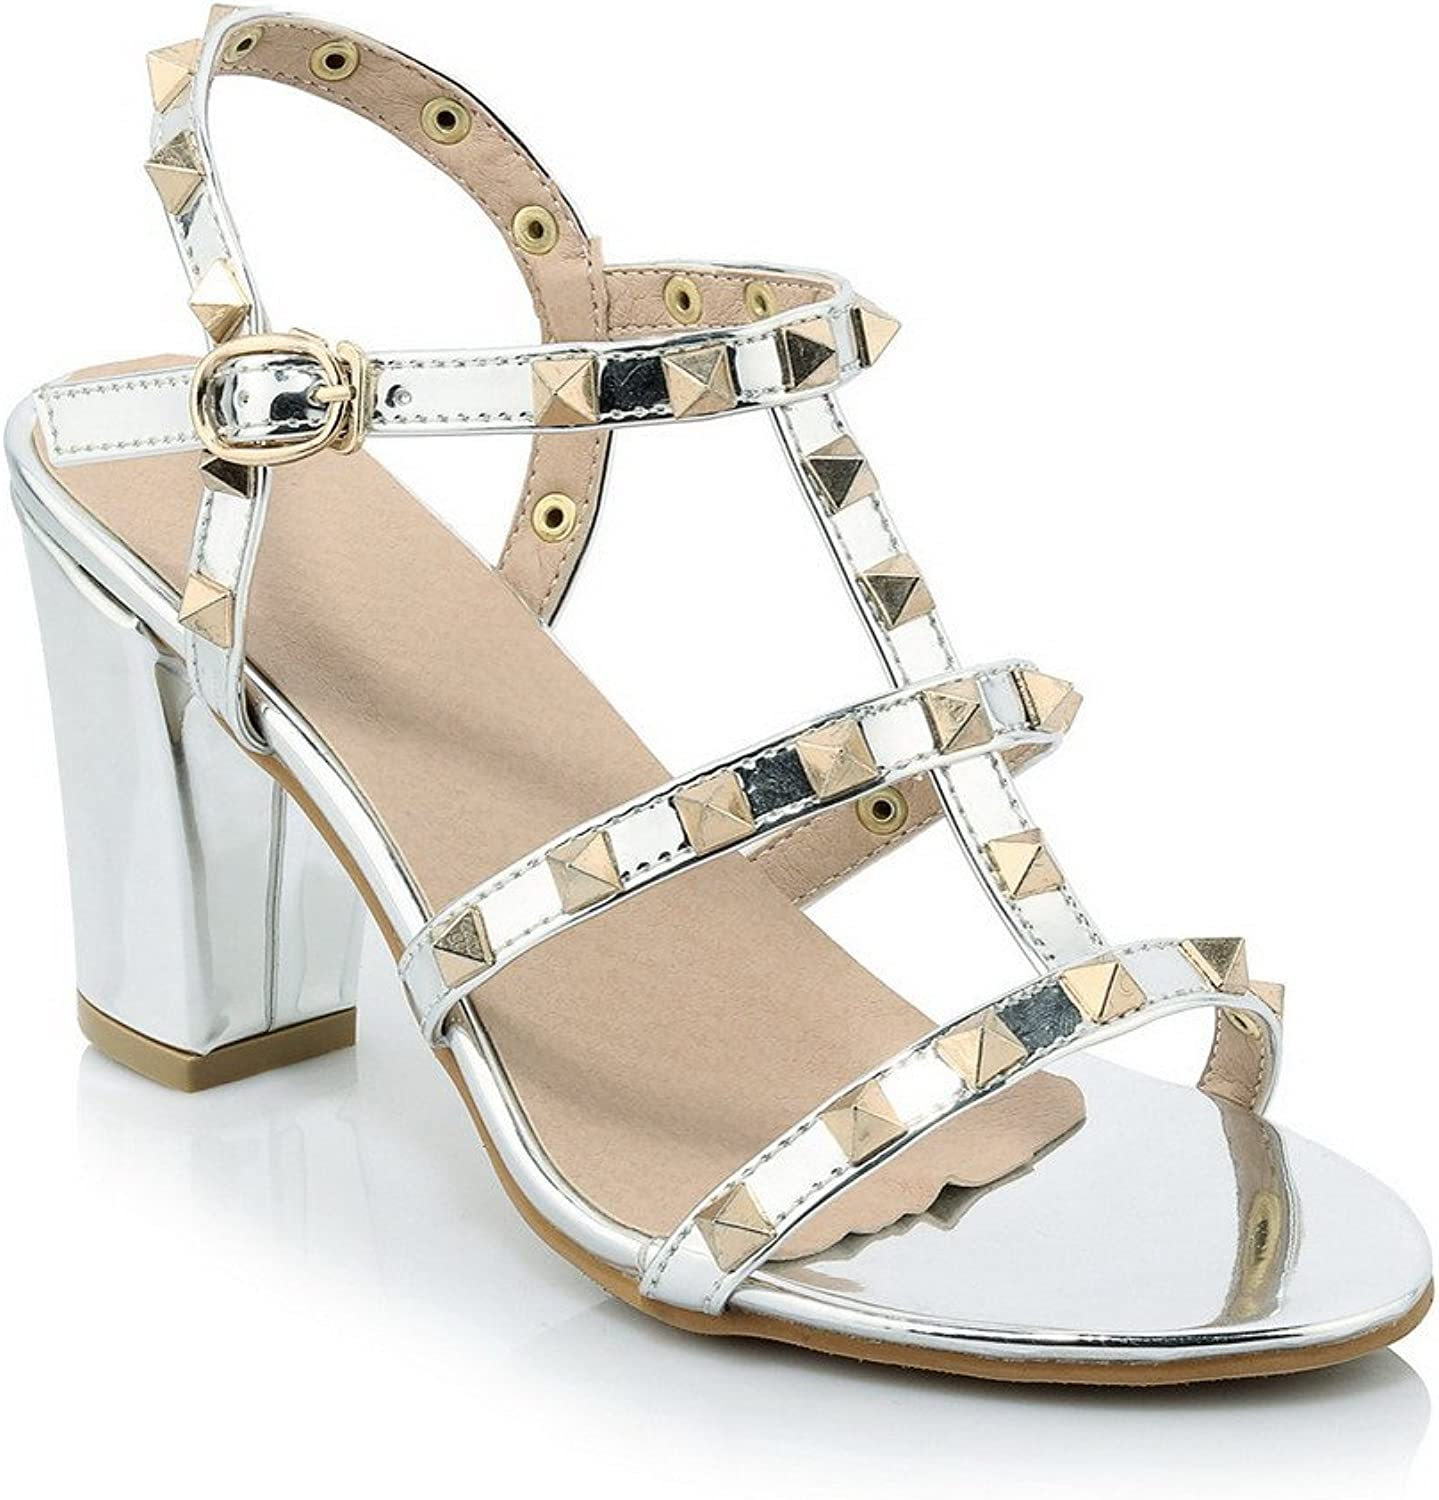 WeenFashion Women's Open Toe High Heels Assorted color Buckle Sandals